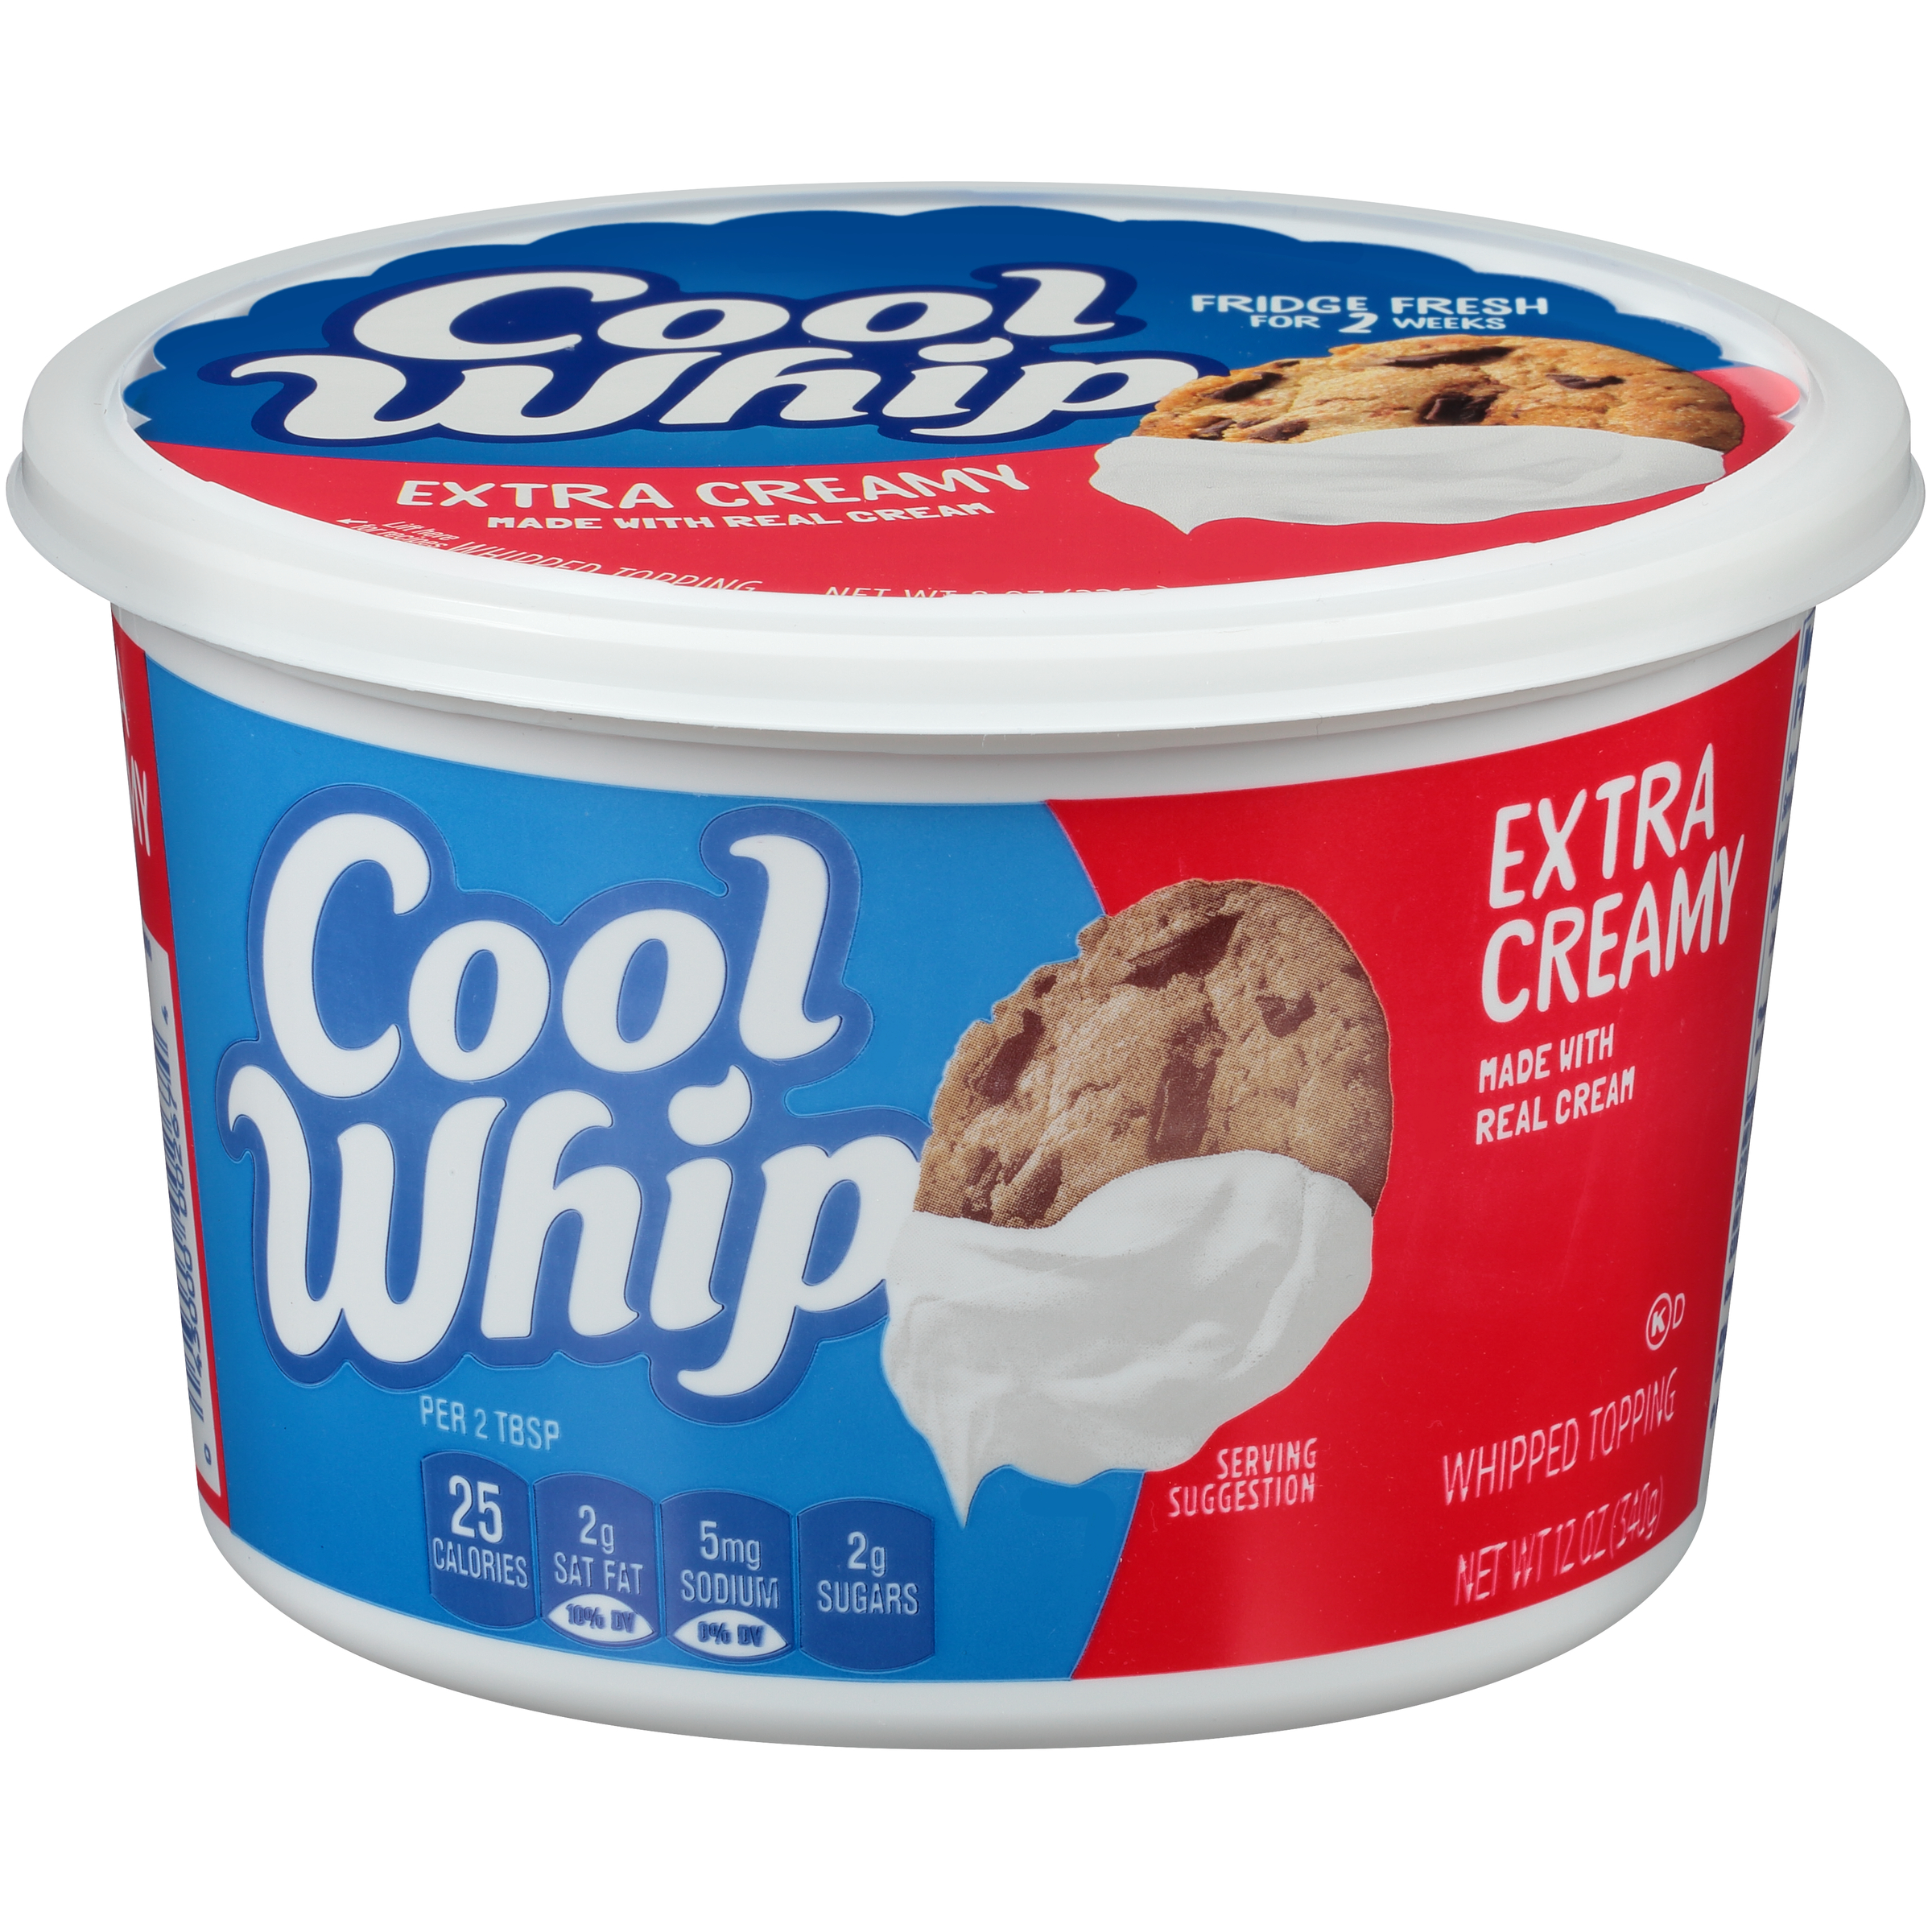 Cool Whip Extra Creamy Whipped Topping 12 oz Tub - Kraft ...